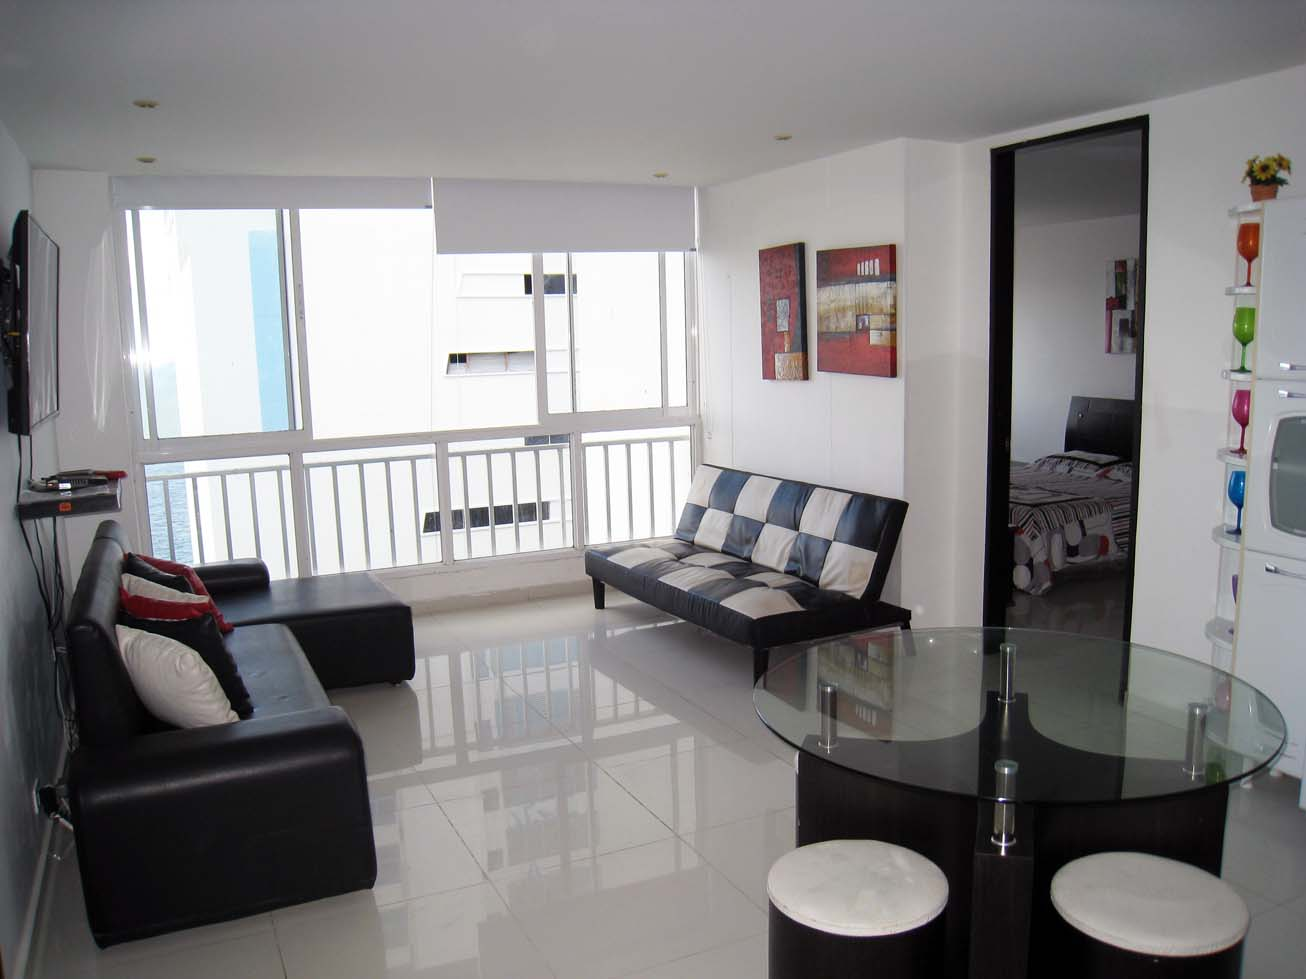 CARTAGENA, El Laguito - Cristoforo Colombo Apartment - 2 Bedroom, Renovated